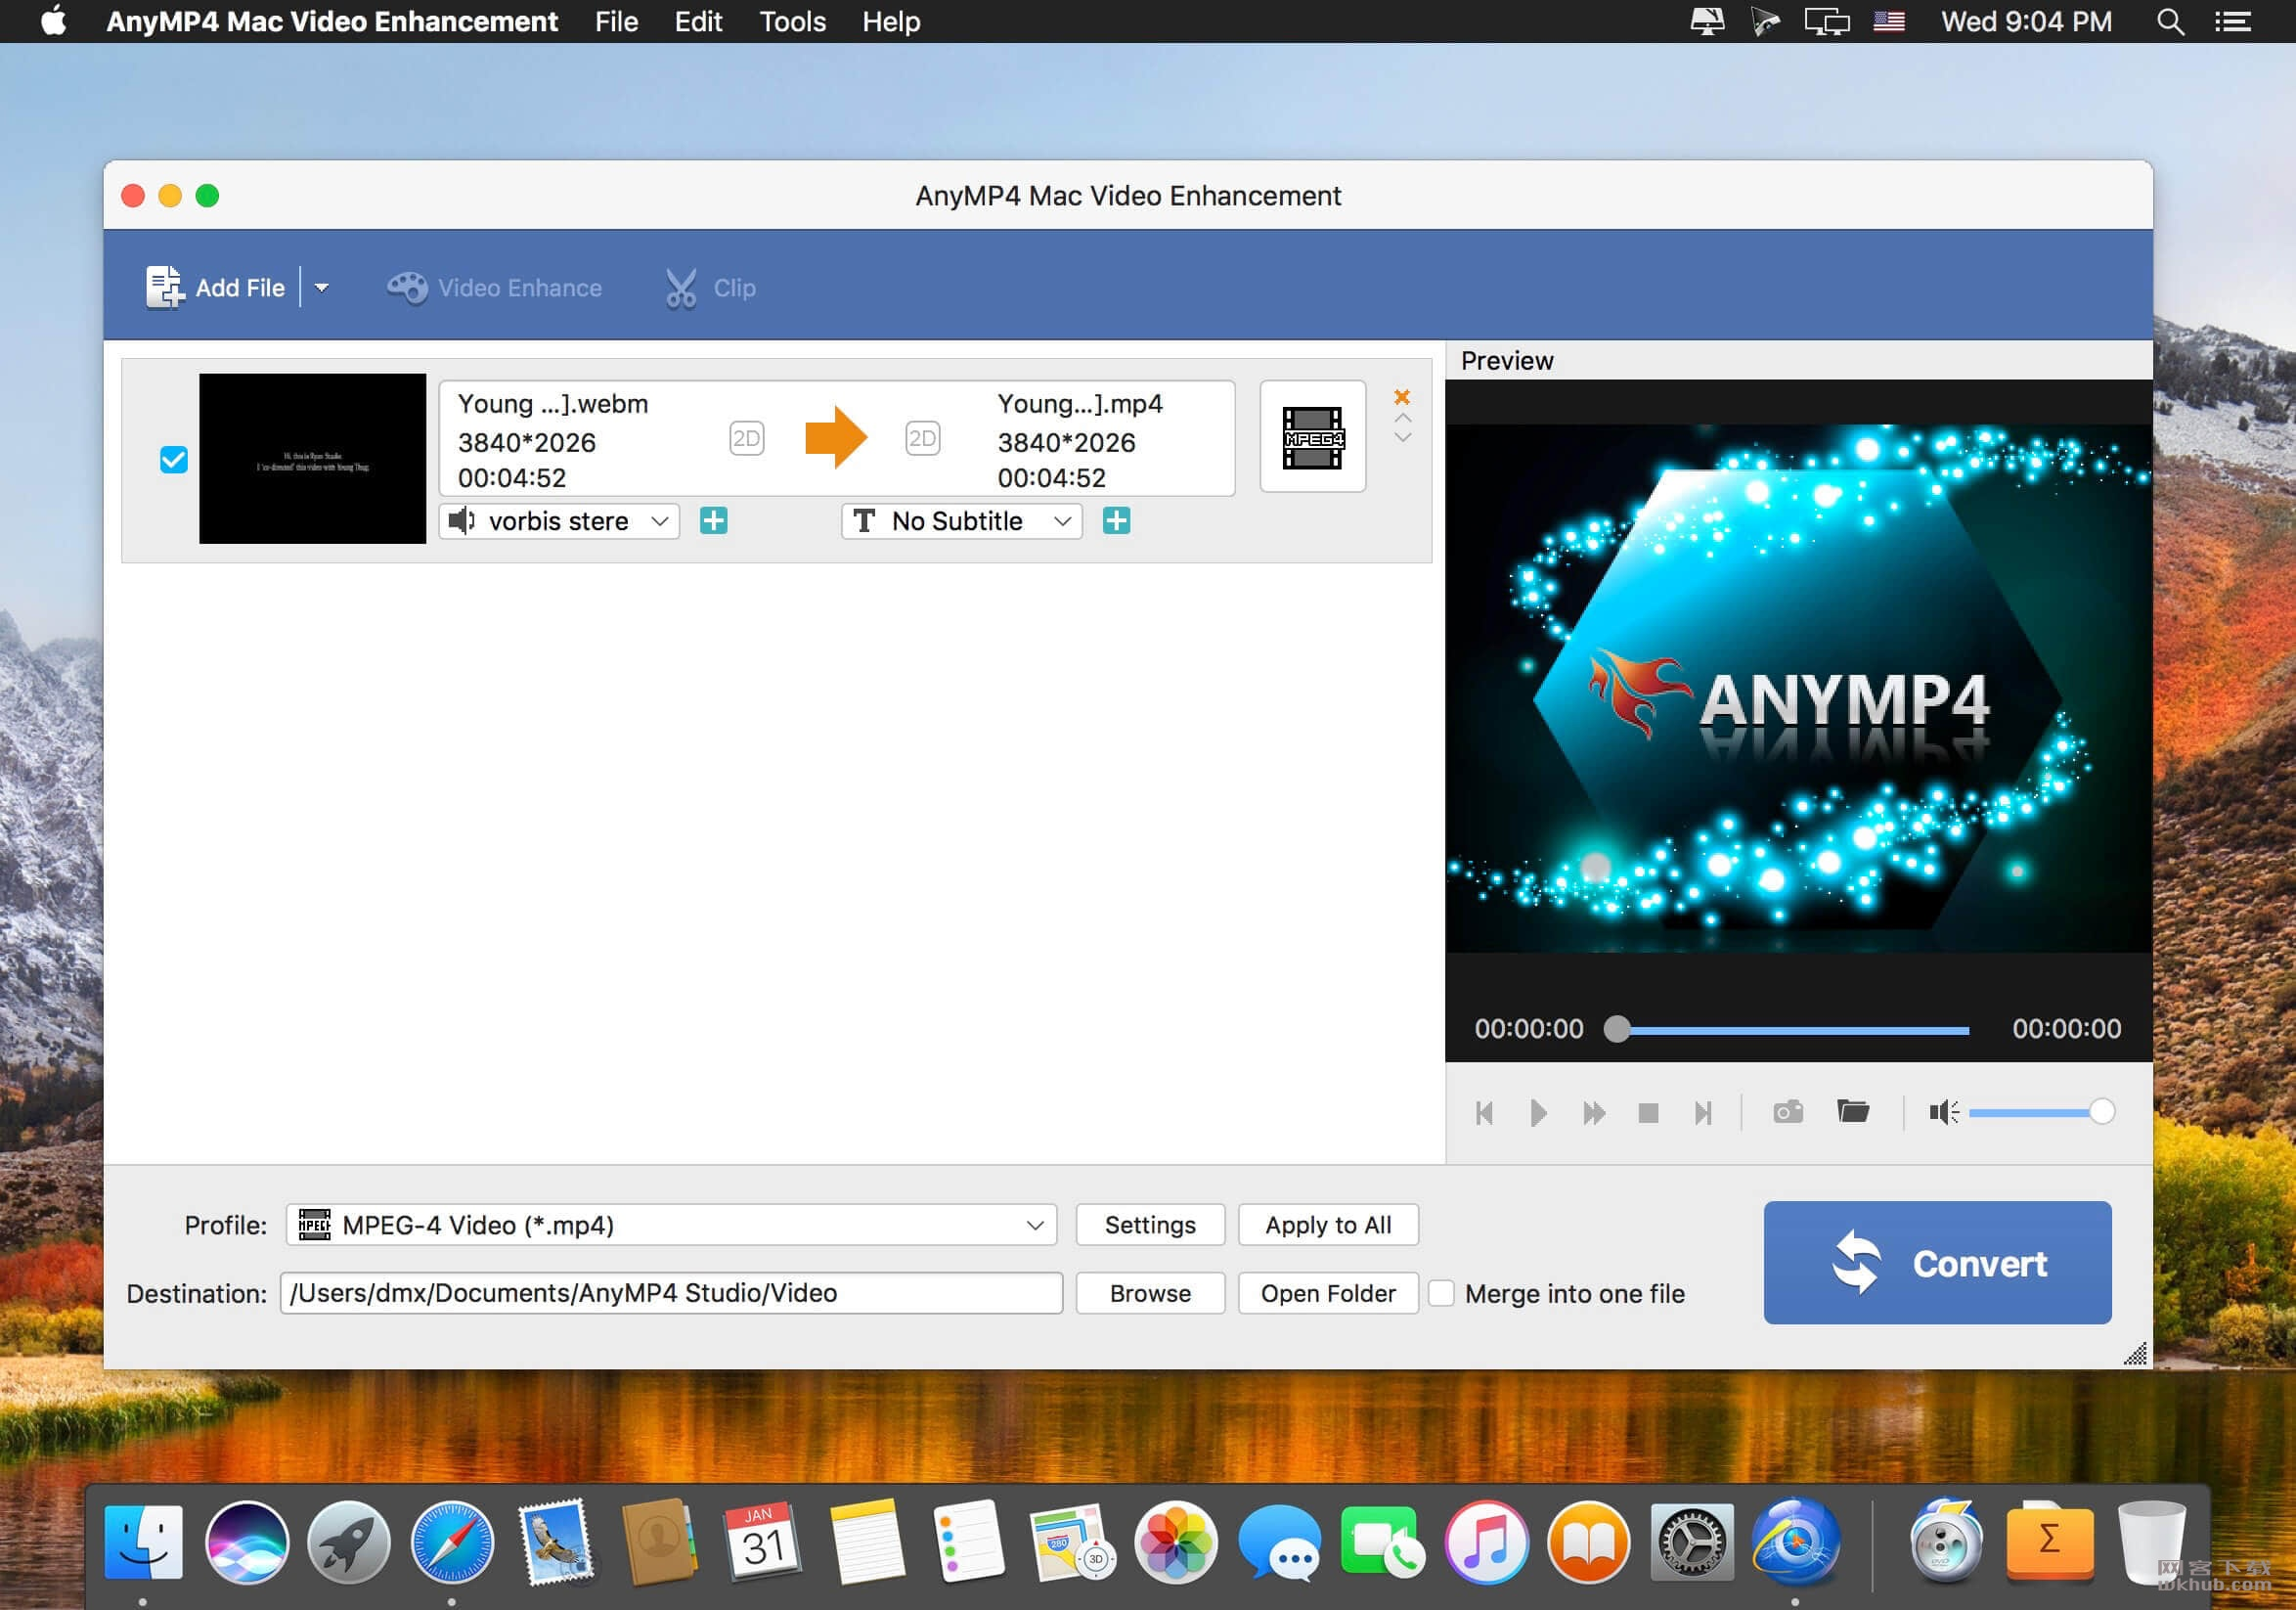 AnyMP4 Mac Video Enhancement 8.2.10 强大的视频增强软件